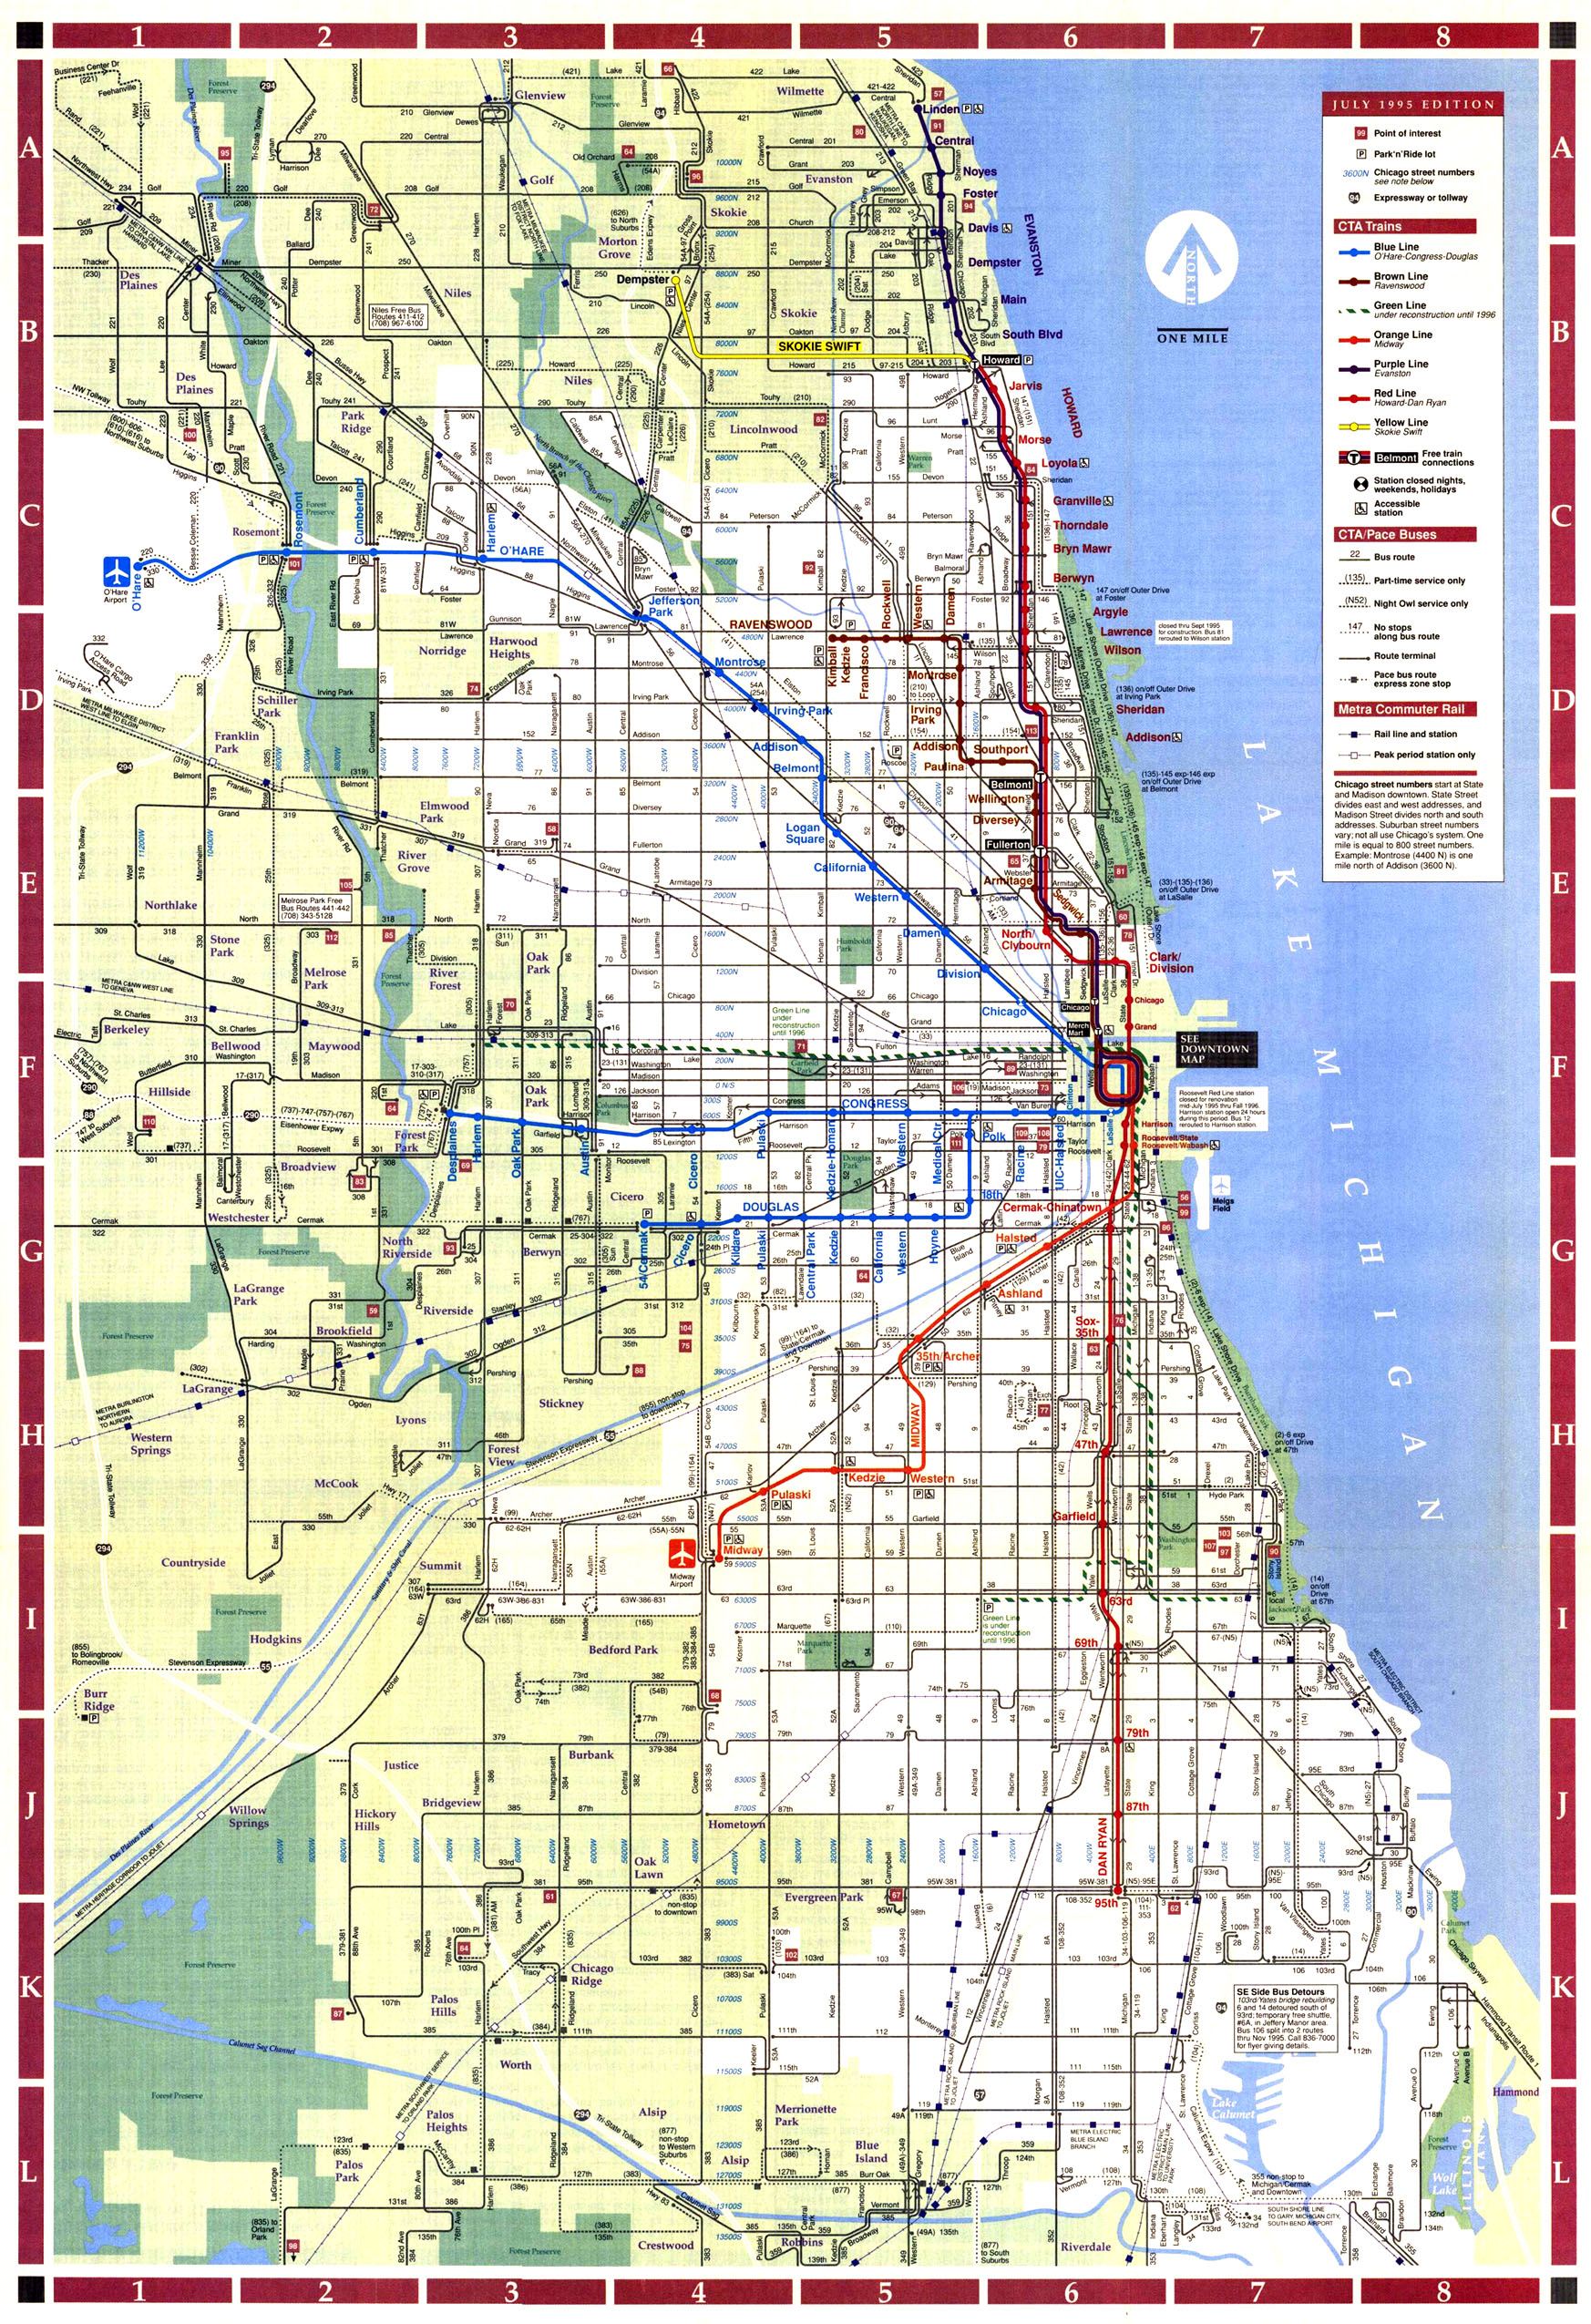 Chicago ''L''.org: System Maps - Route Maps on the l chicago map, chicago subway station map, chicago l train system, chicago el map, austin metro transit map, chicago red line train routes, chicago metra blue line map, san francisco transportation map, uptown map, chicago blue line train map, chicago cta map with streets, chicago orange line map, chicago illinois state map, chicago train routes map, chicago supermarkets map, chicago rail map, orlando park il map, philadelphia location on a map,